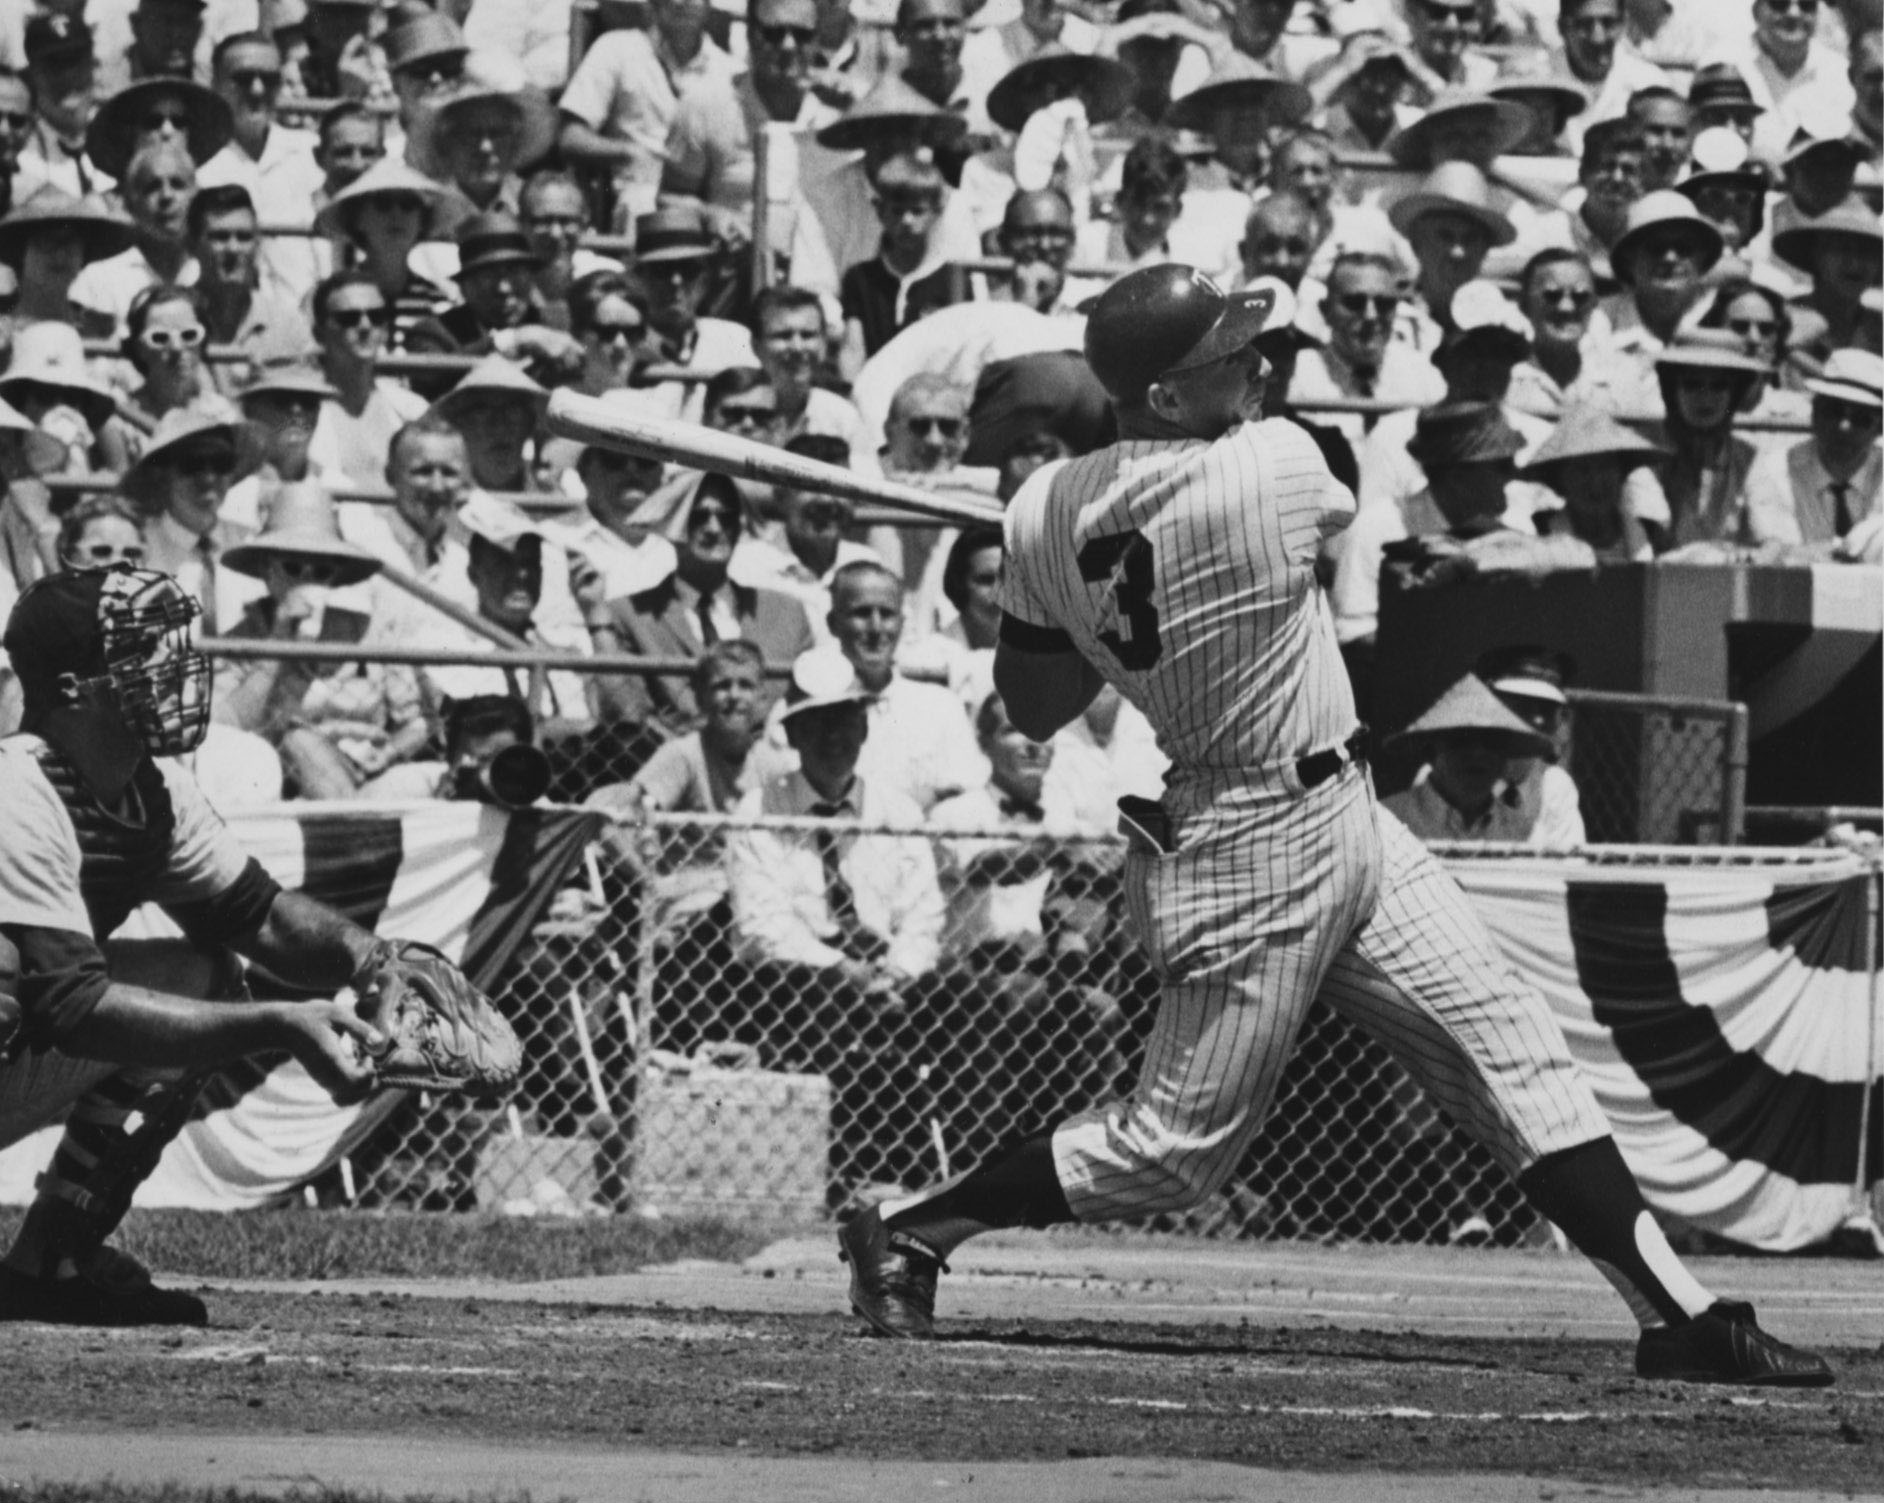 Harmon Killebrew hits a game-tying home run, July 13, 1965, for the American League team during the All Star game, which that year was played at Metropolitan Stadium in Bloomington, Minnesota. The National League went on to win the game. Photo by Kent Kob